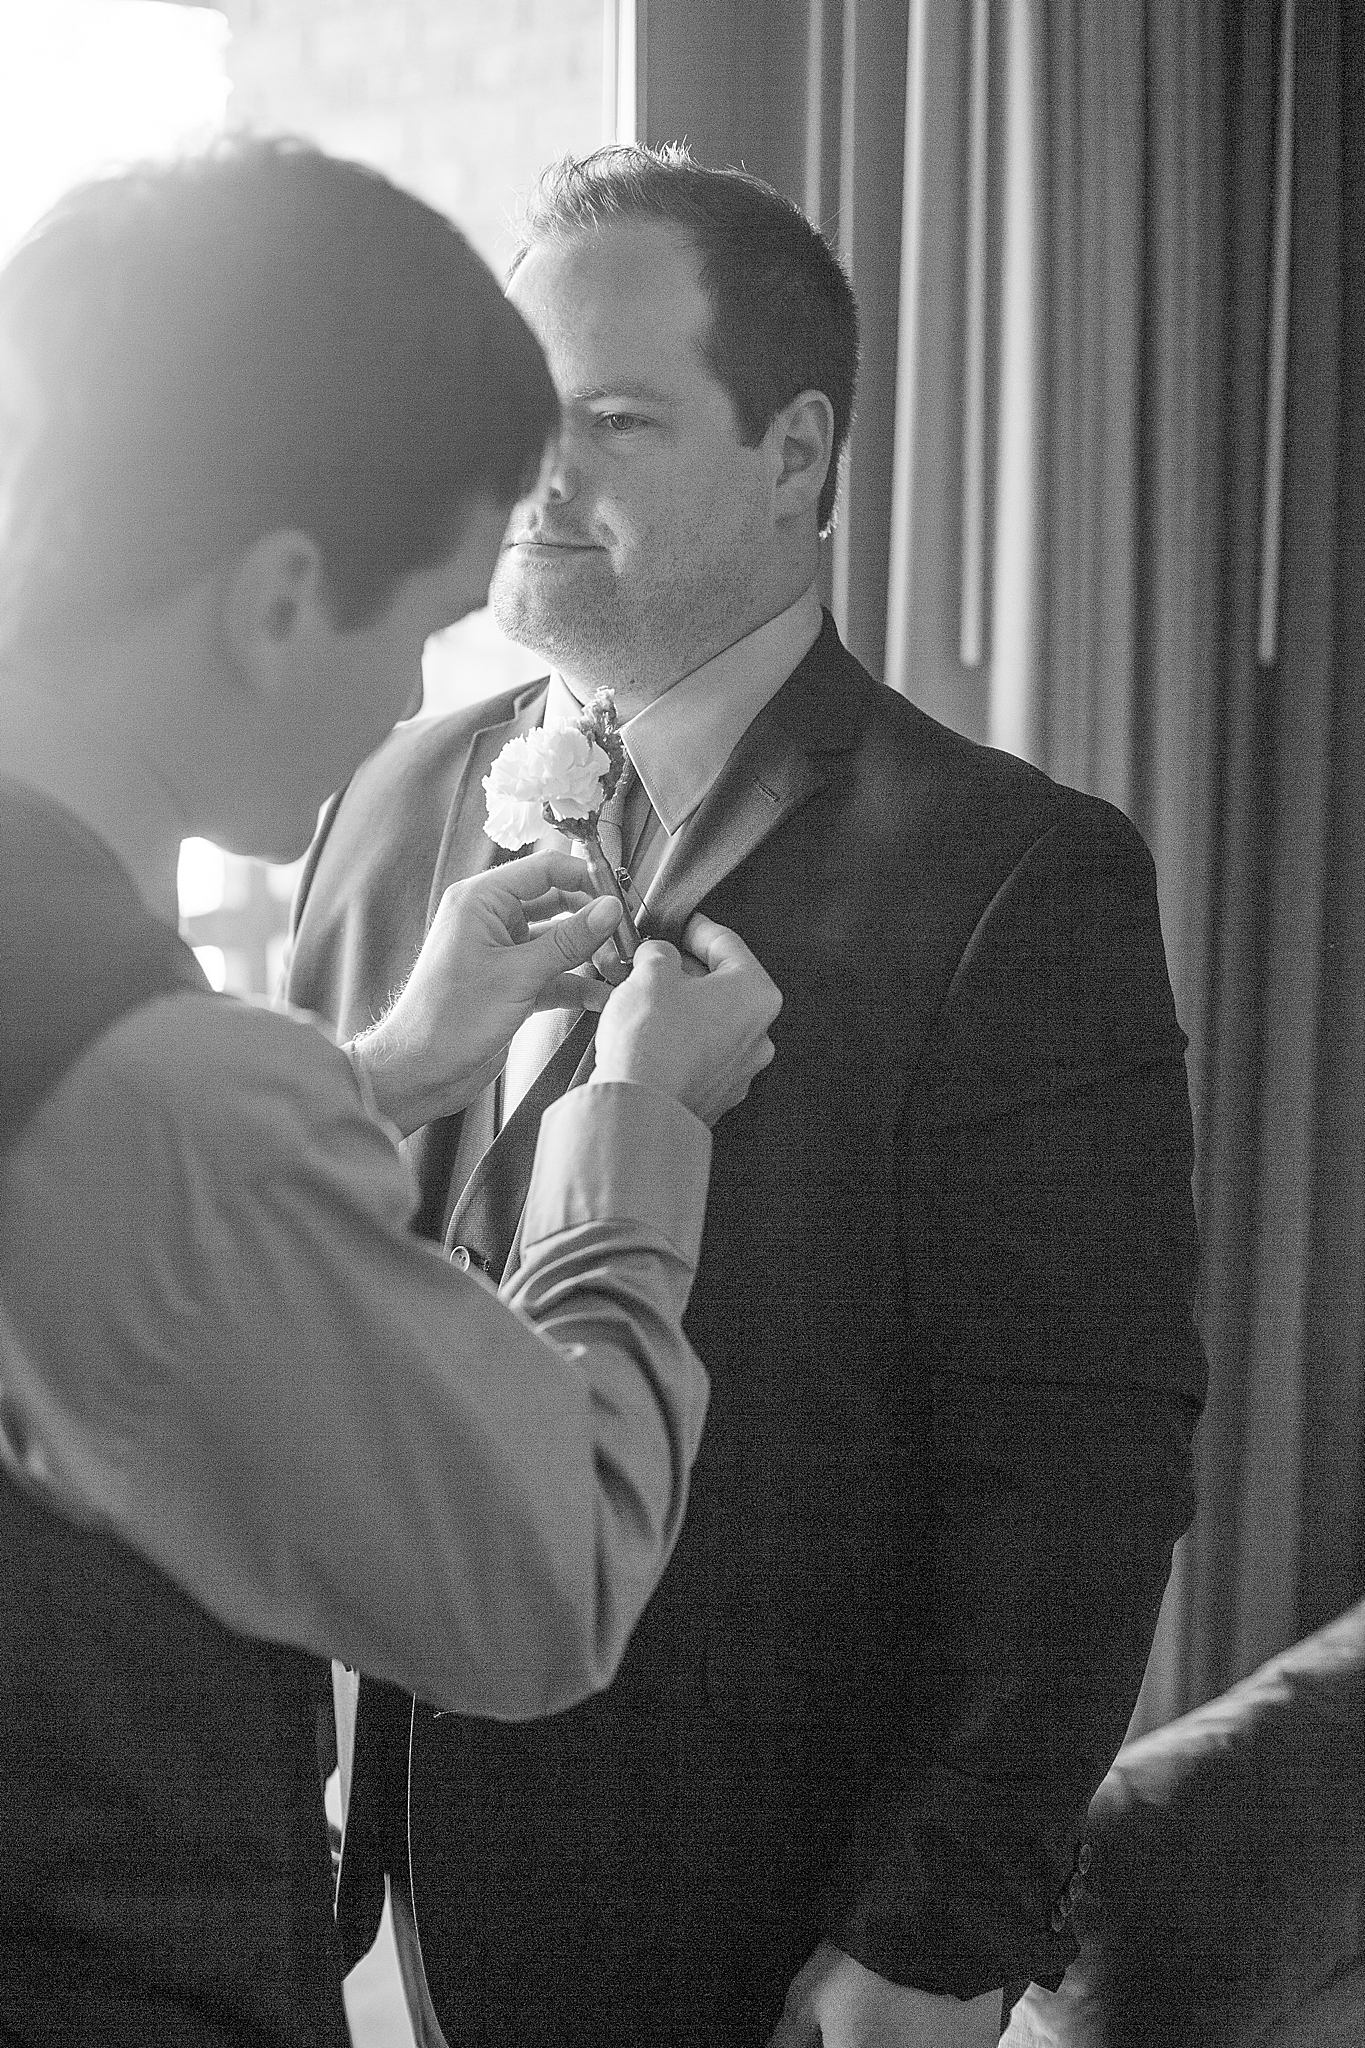 groomsman places boutonnière on groom's tux